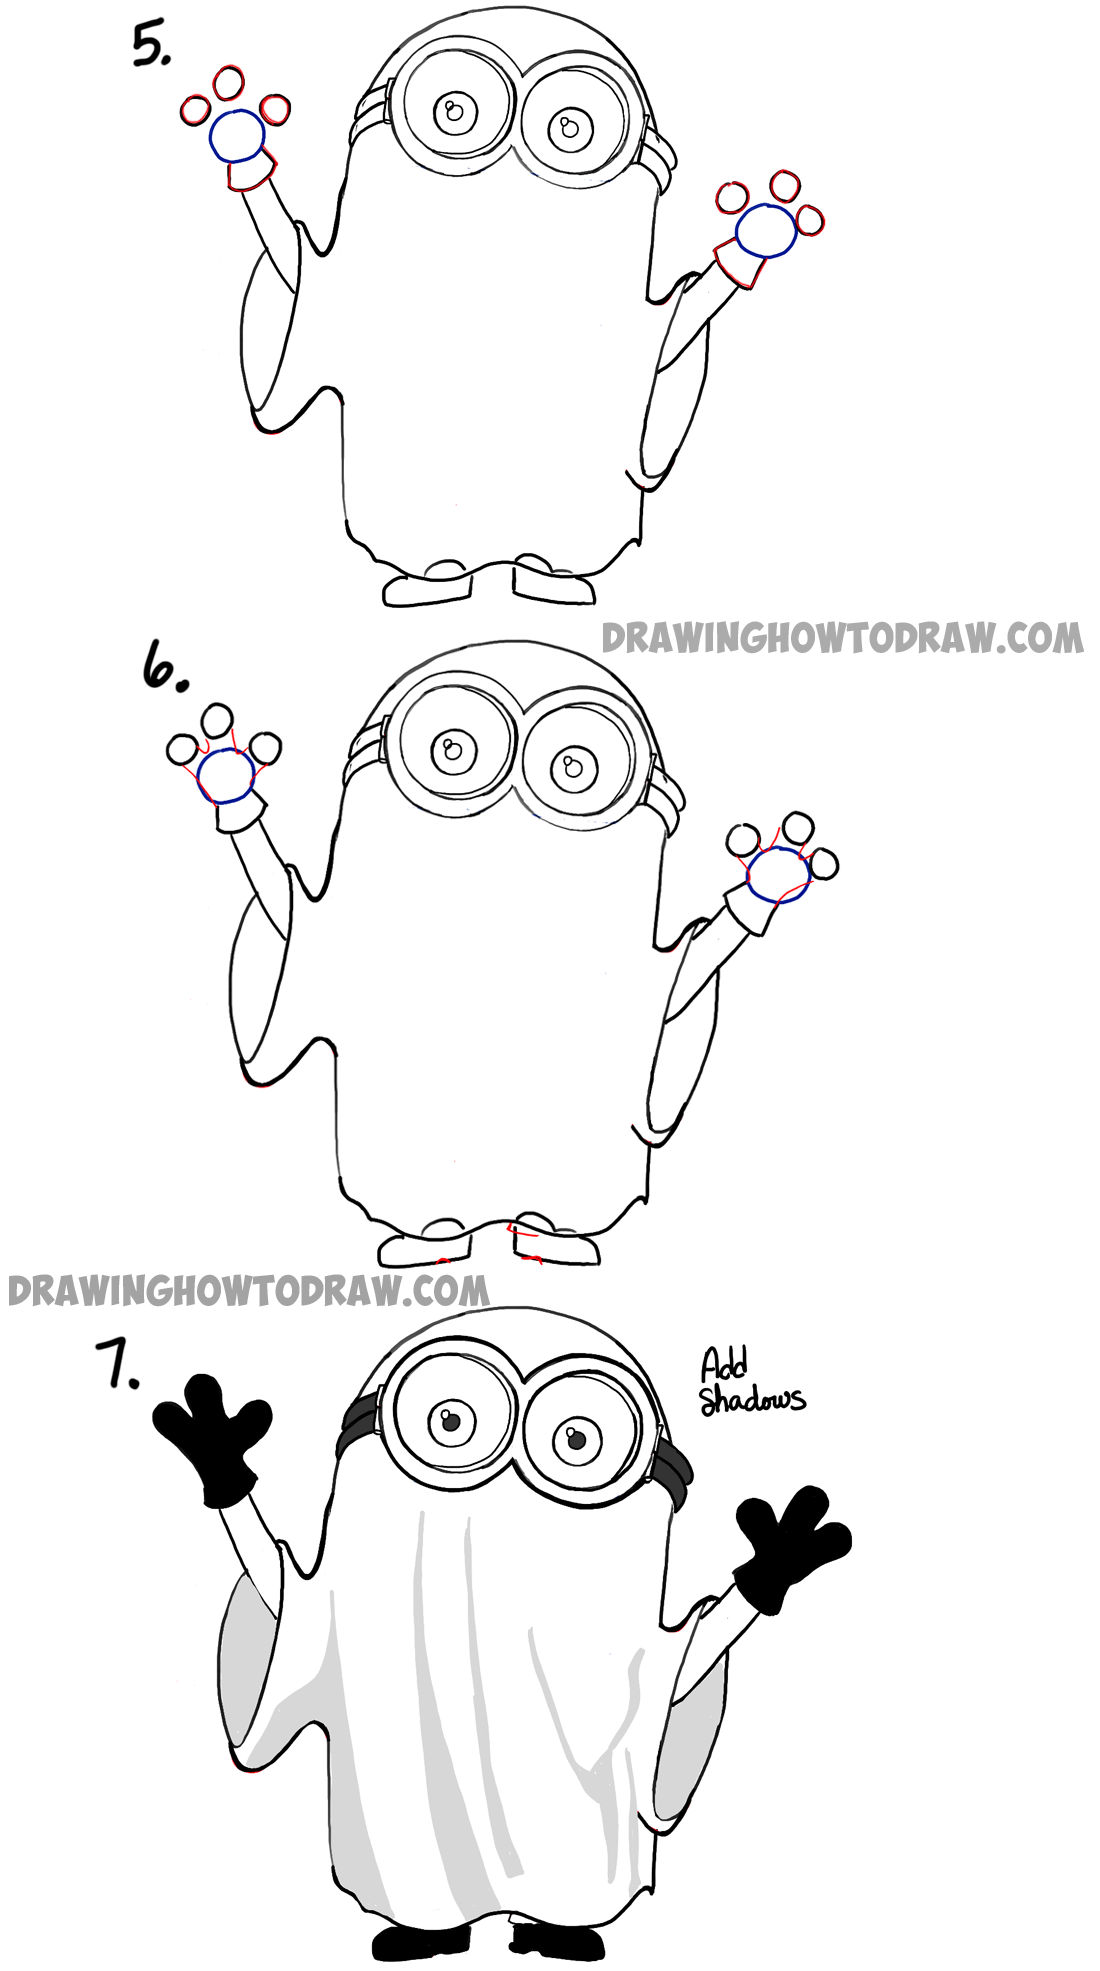 Show me how to draw a minion - How To Draw Ghost Minion For Halloween Step By Step Instructions I Hope That This Tutorial